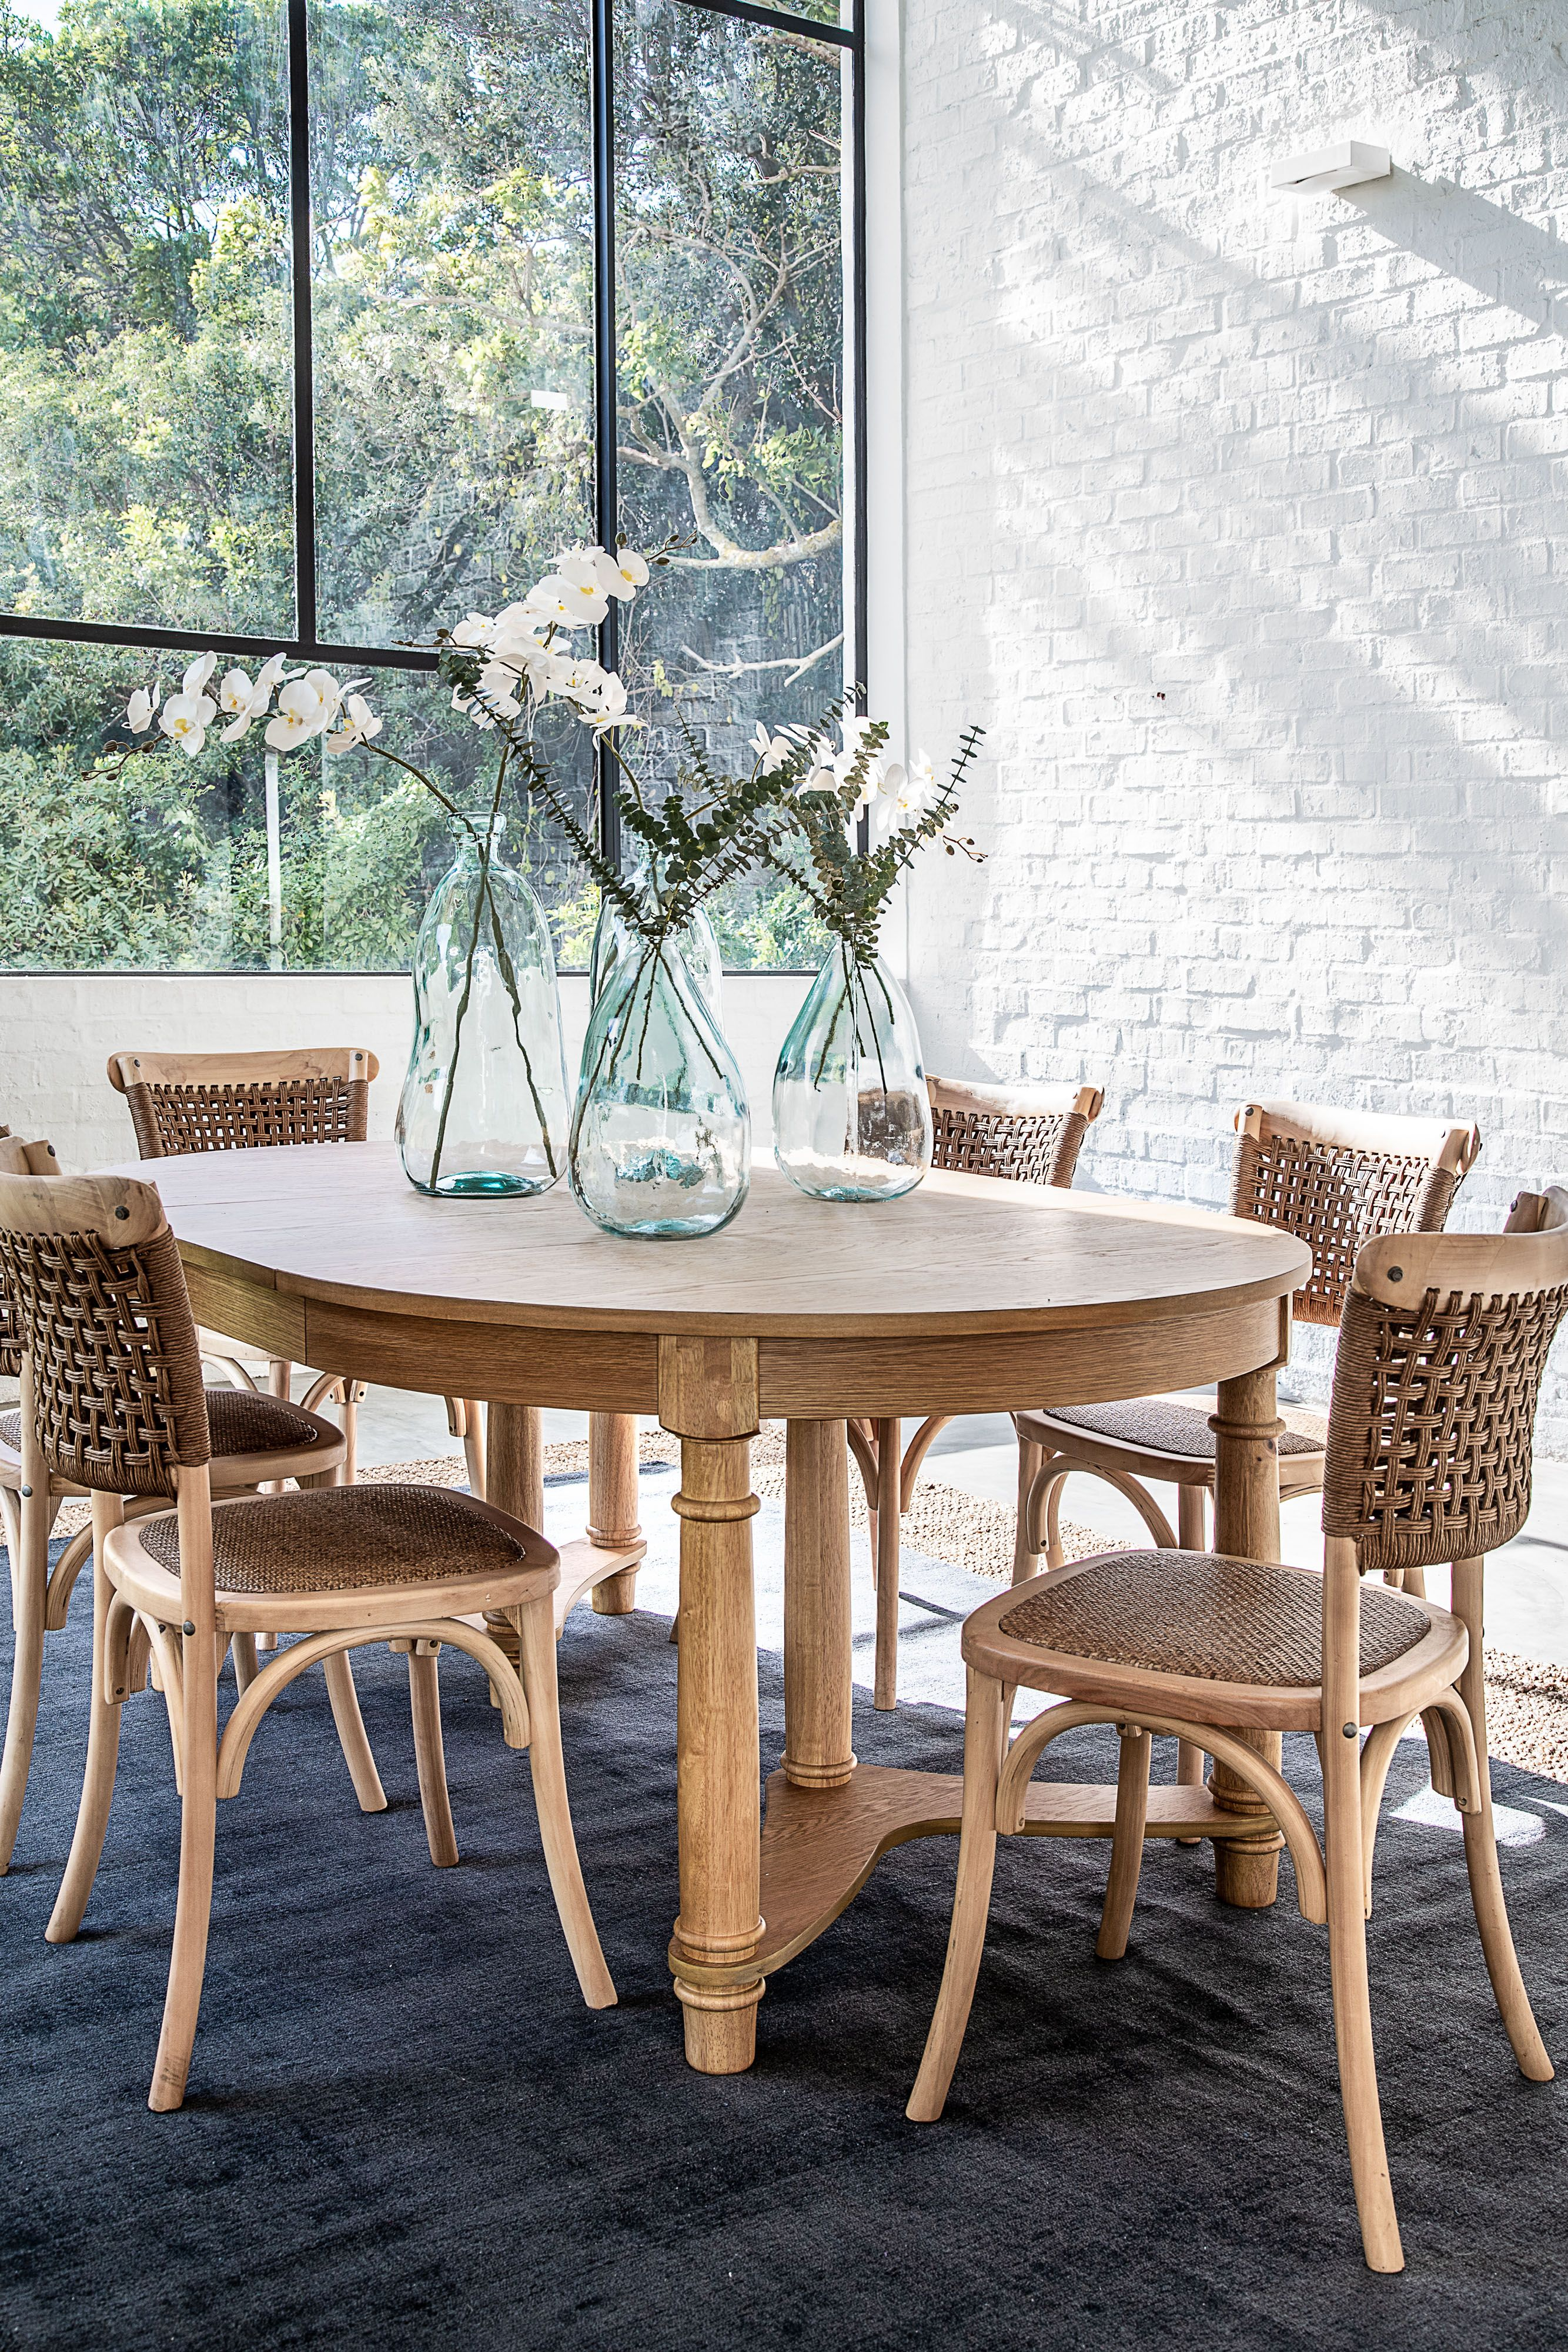 The Ida Dining Table Is A Beautiful Round Table That Can Seat Up